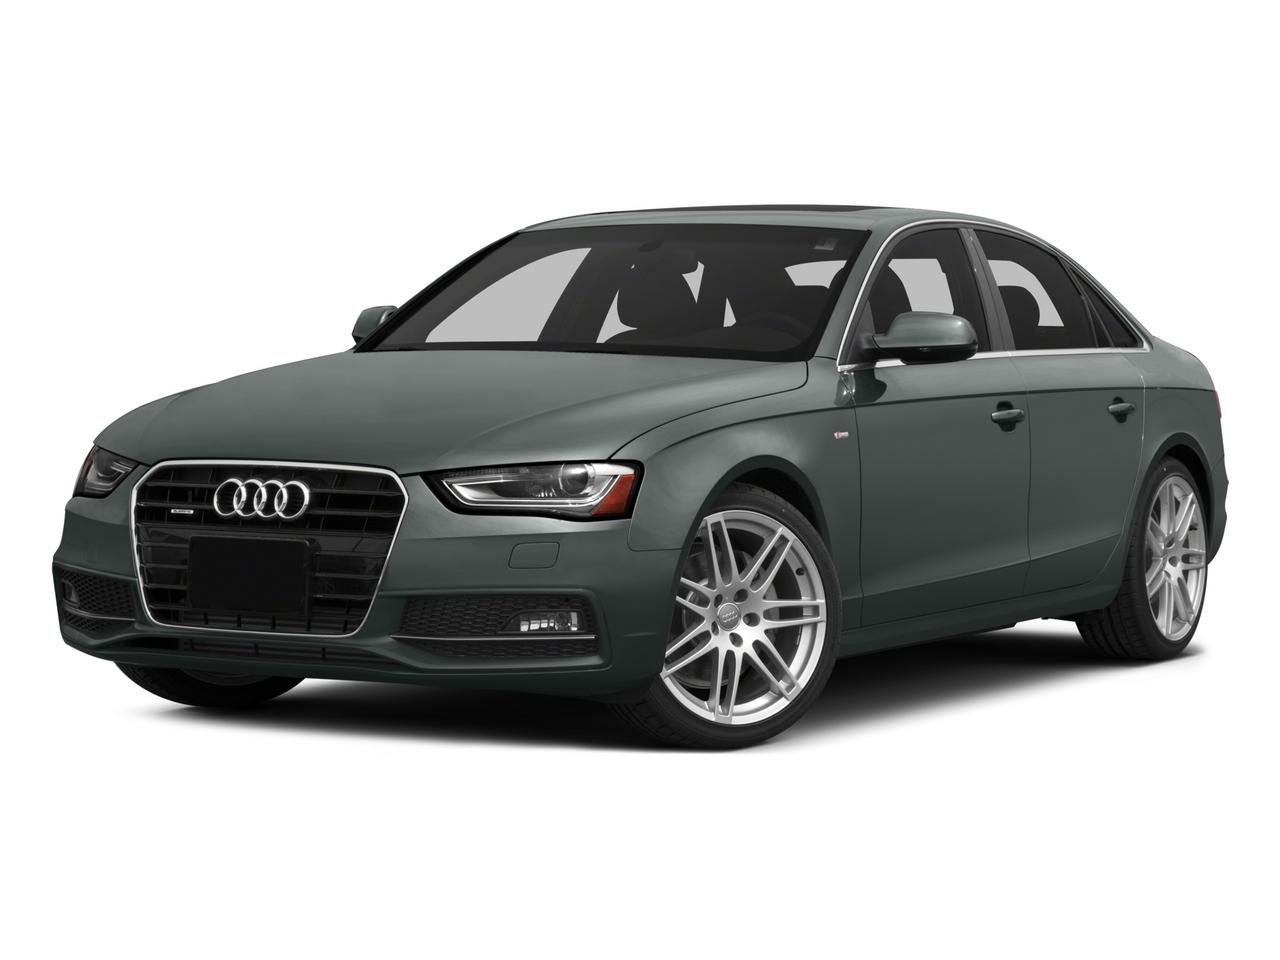 2015 Audi A4 Vehicle Photo in Watertown, CT 06795